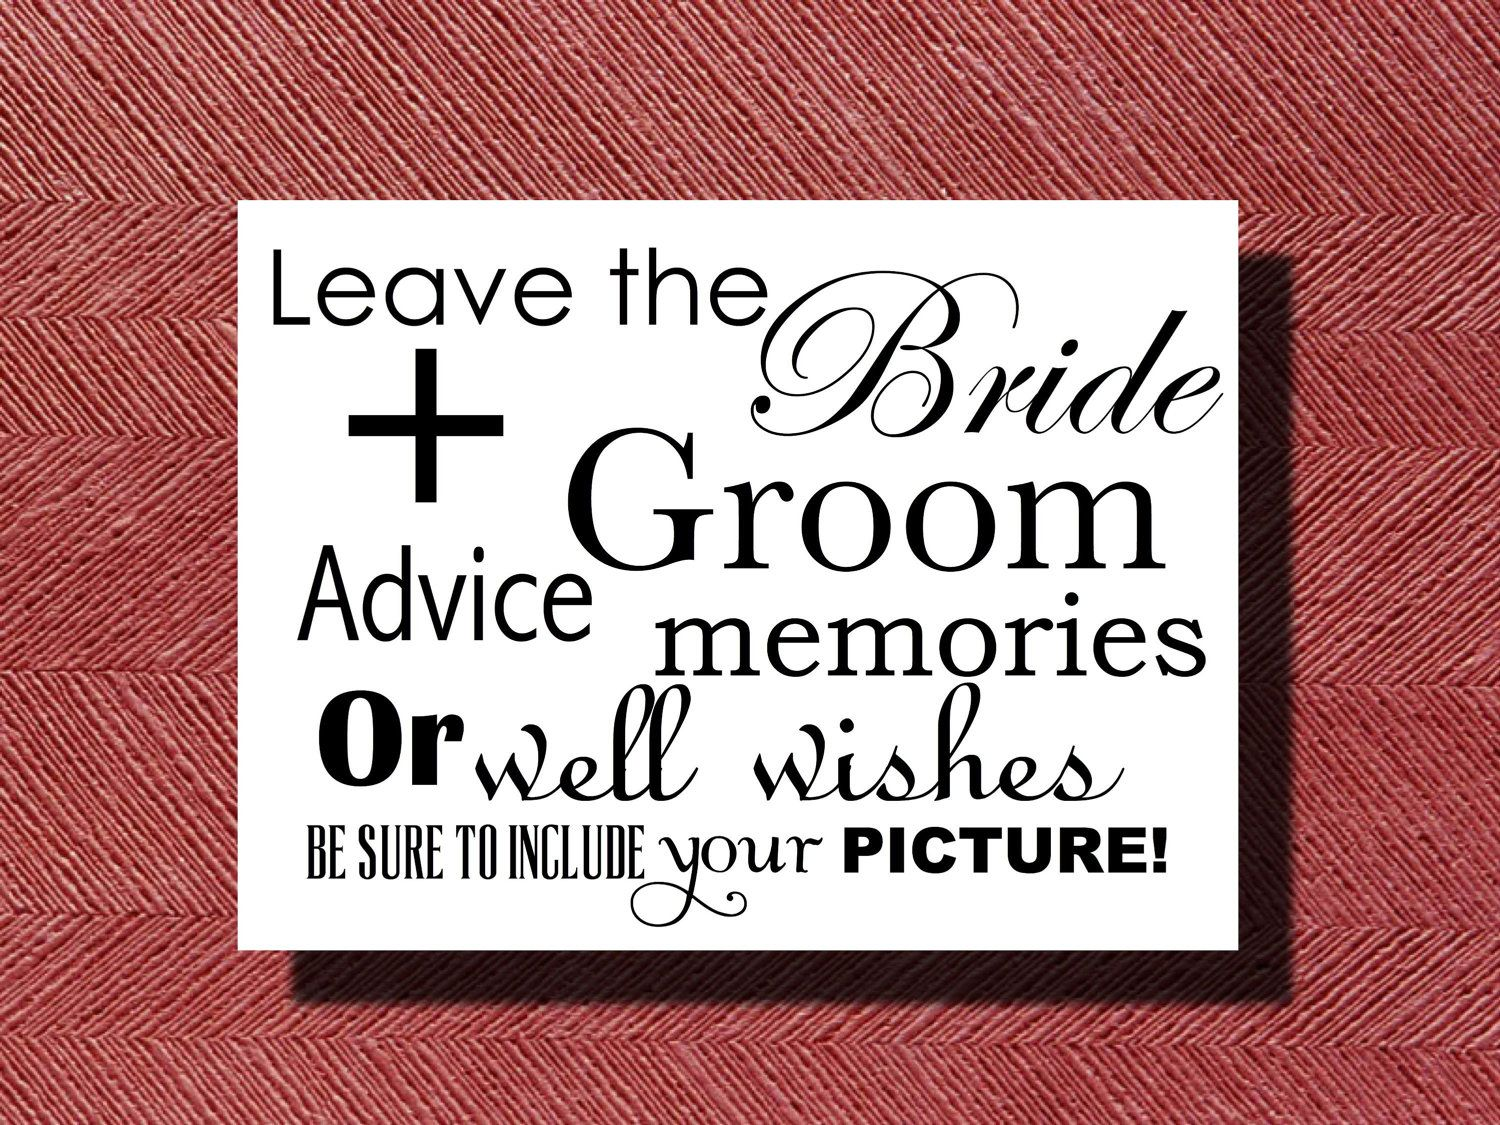 minus the photo part | Wedding ideas | Pinterest | Wedding signage ...